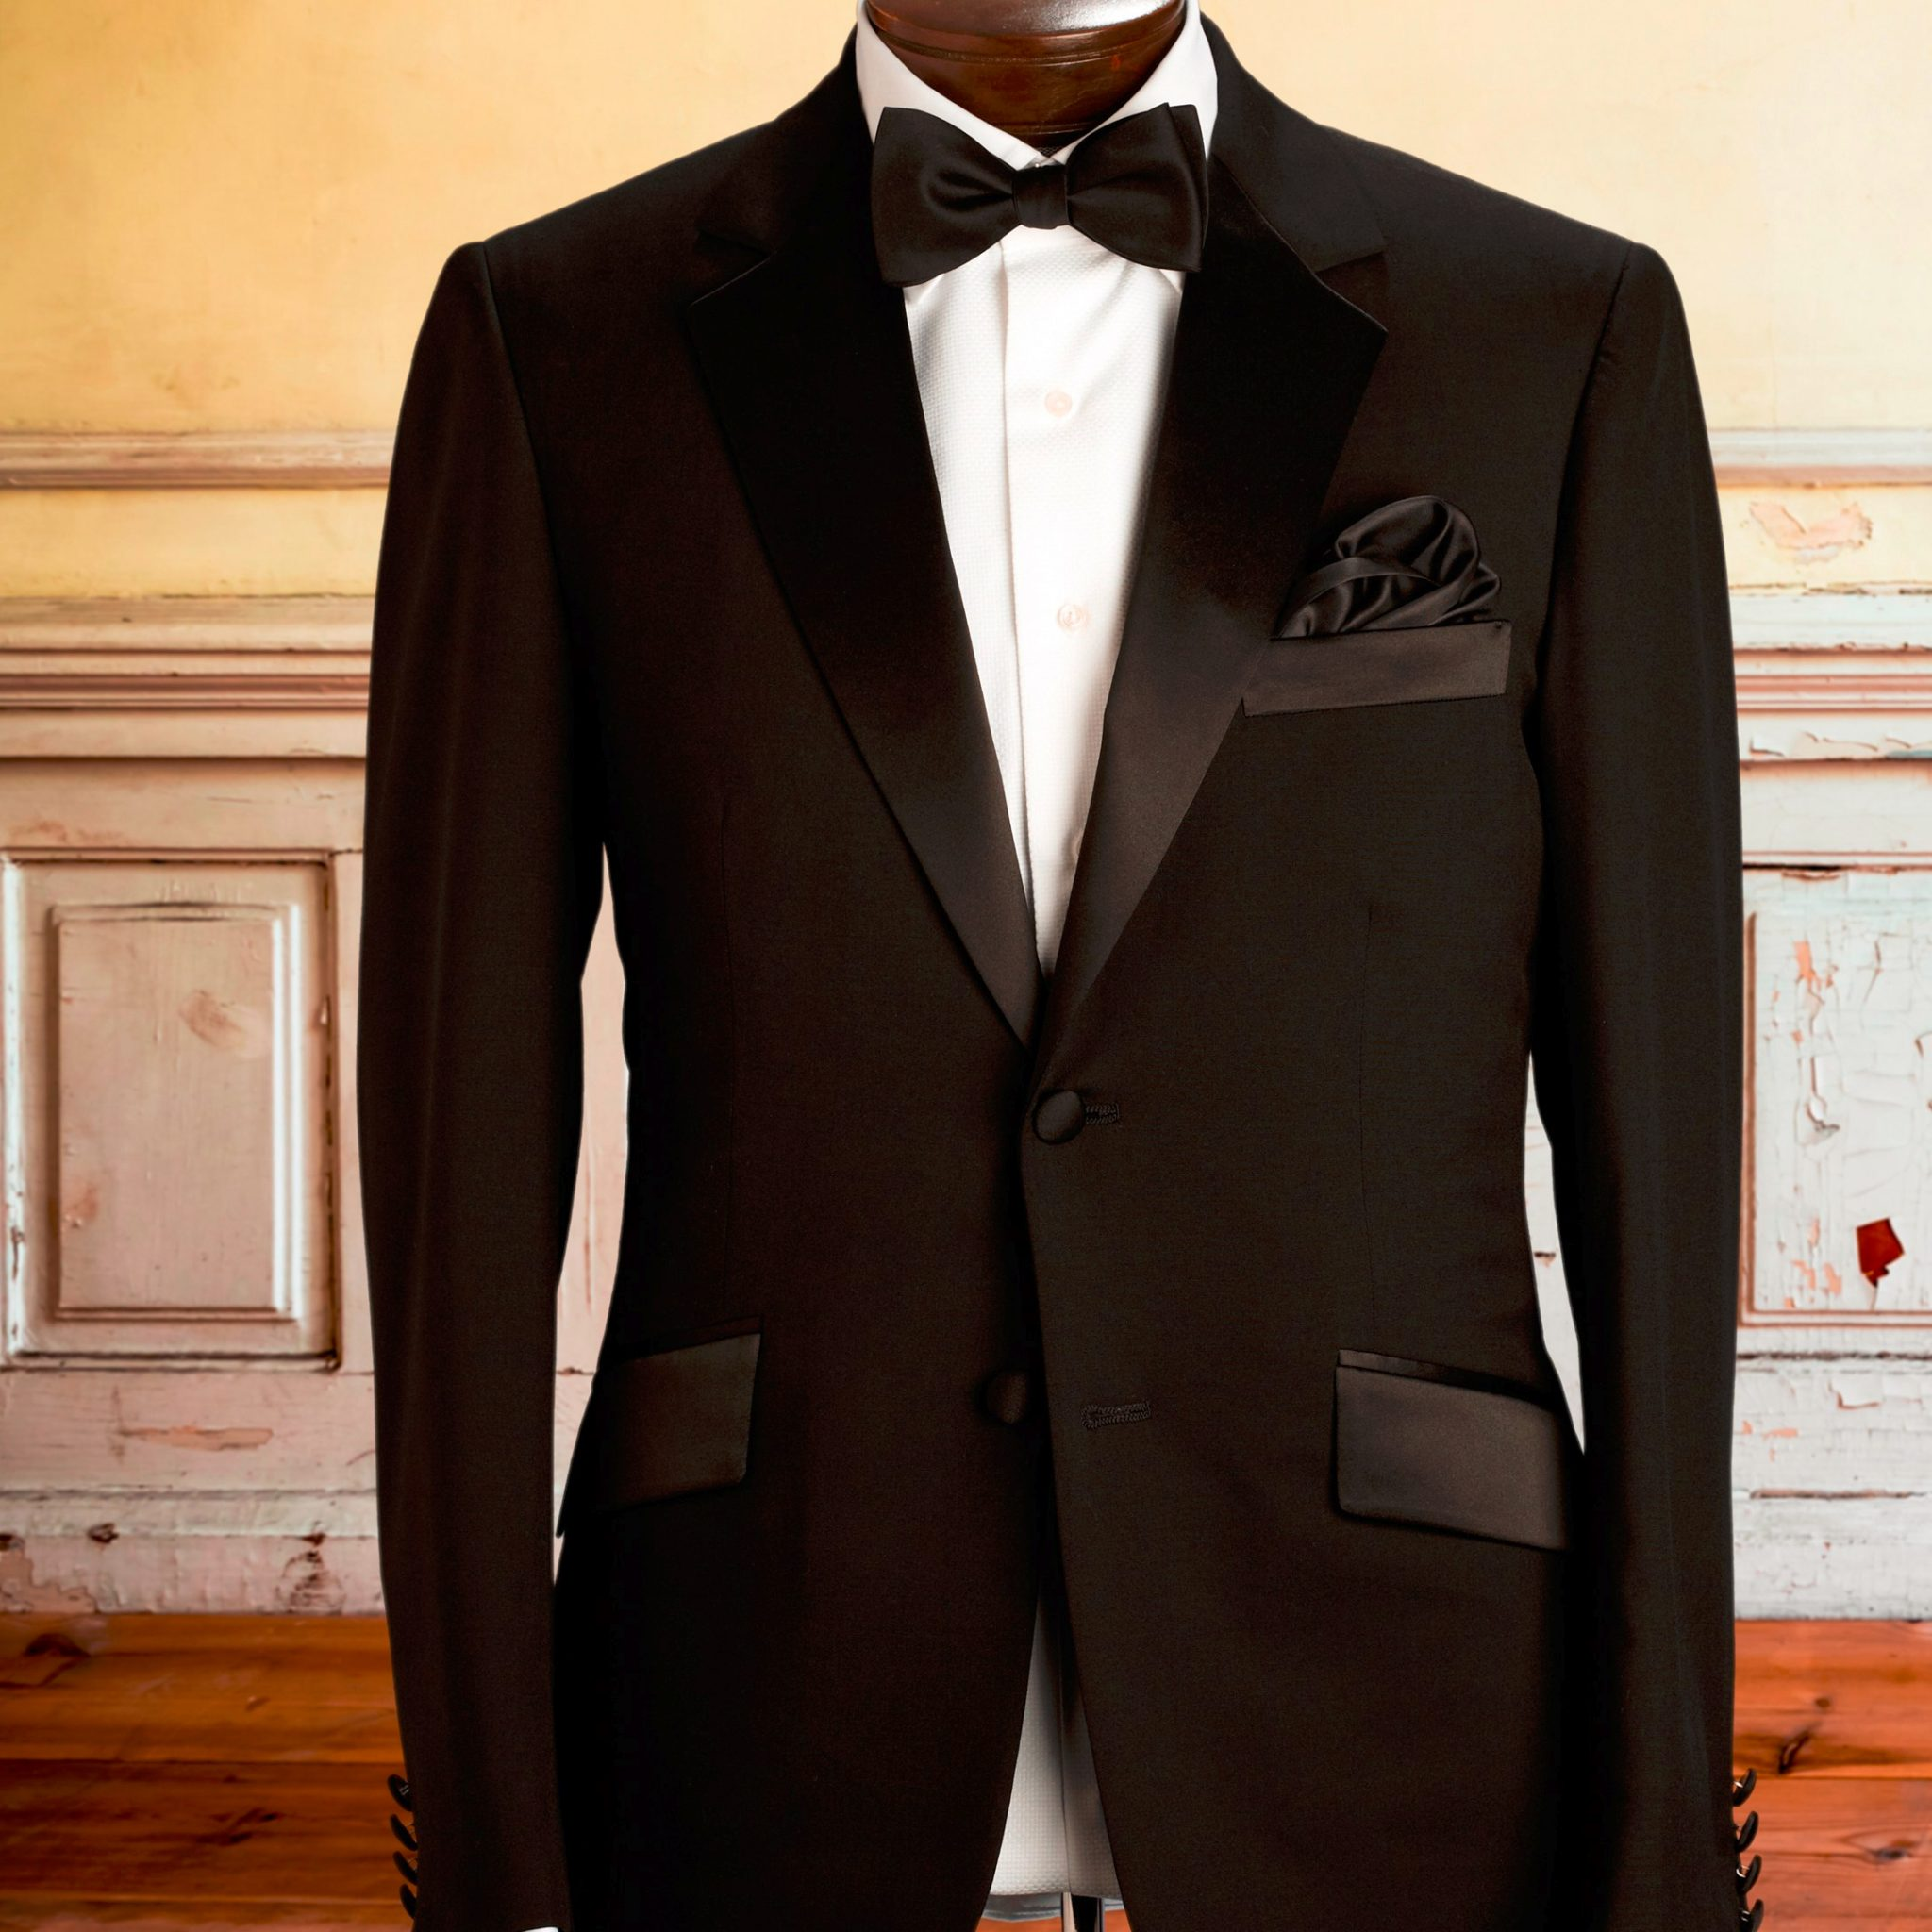 best custom wedding tuxedo in nyc